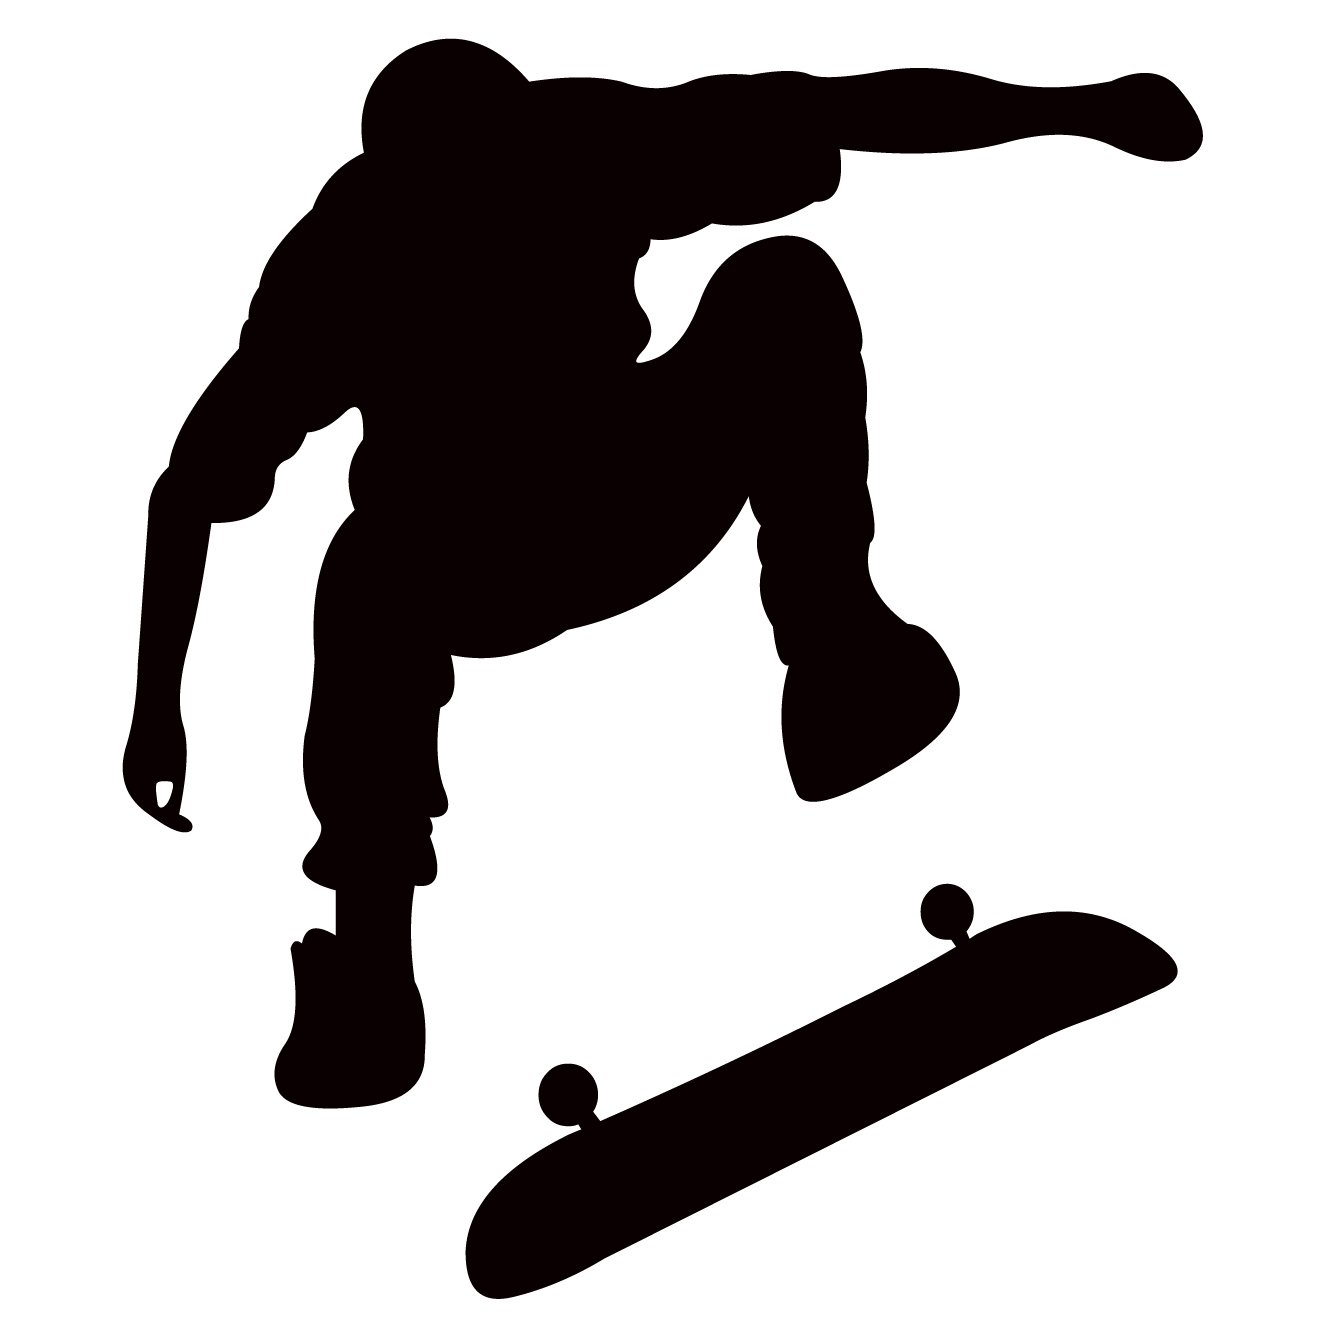 Amazon.com Skateboarding Wall Decal Sticker 4 - Decal Stickers and Mural for Kids Boys Girls Room and Bedroom. Skating Wall Art for Home Decor and ...  sc 1 st  Amazon.com & Amazon.com: Skateboarding Wall Decal Sticker 4 - Decal Stickers and ...